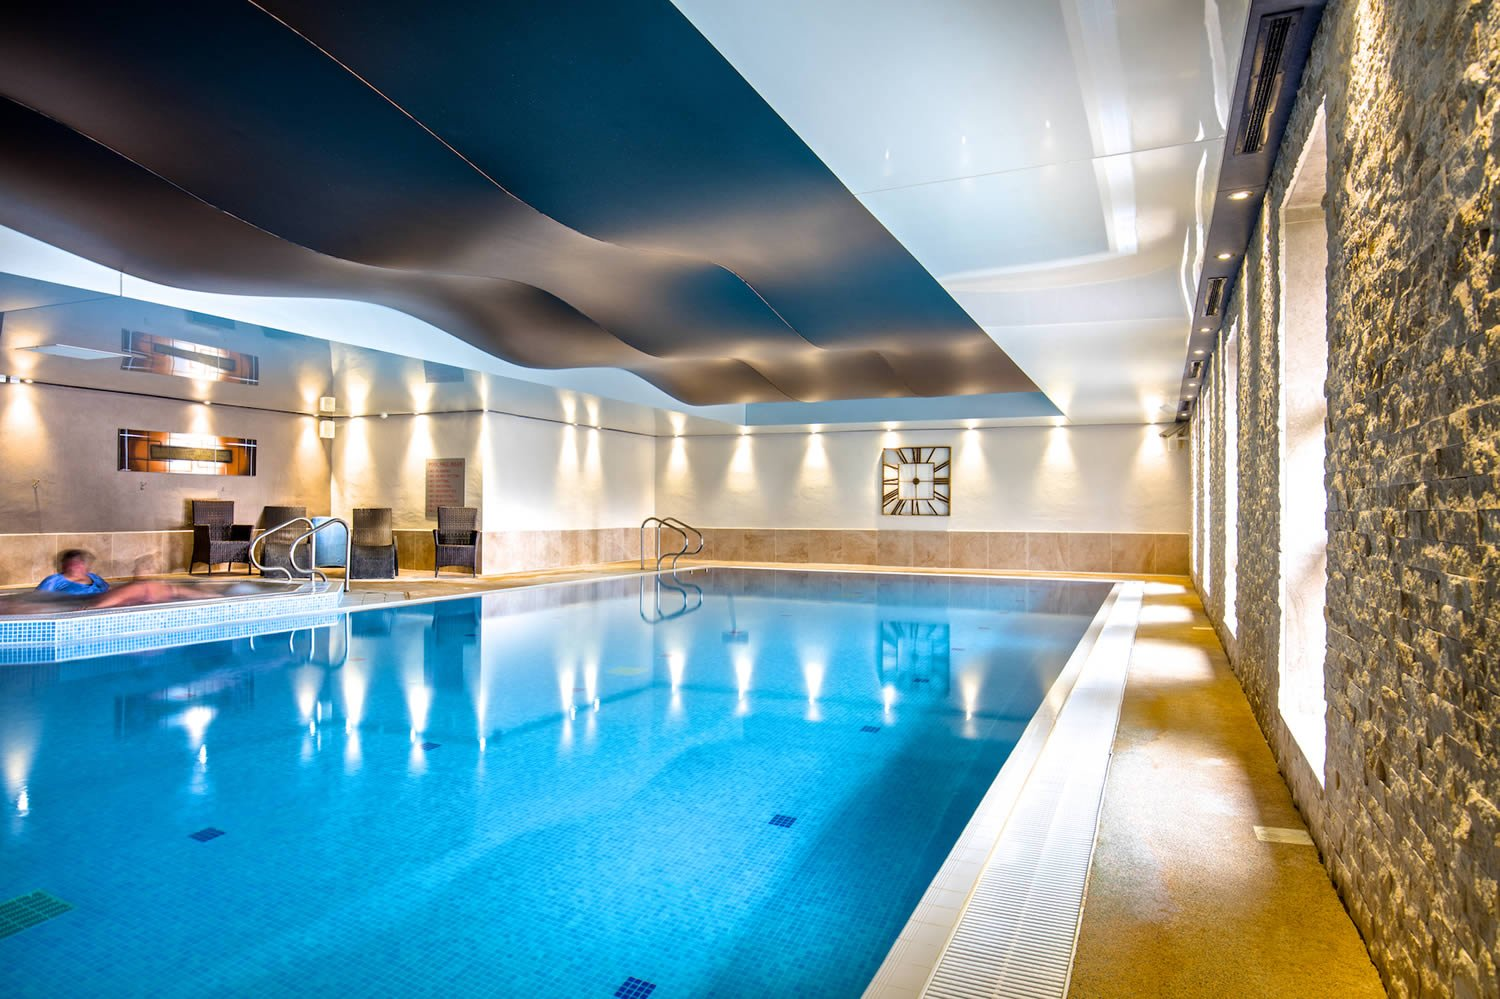 Spa pool spa and swimming pool yorkshire - Swimming pools in south yorkshire ...